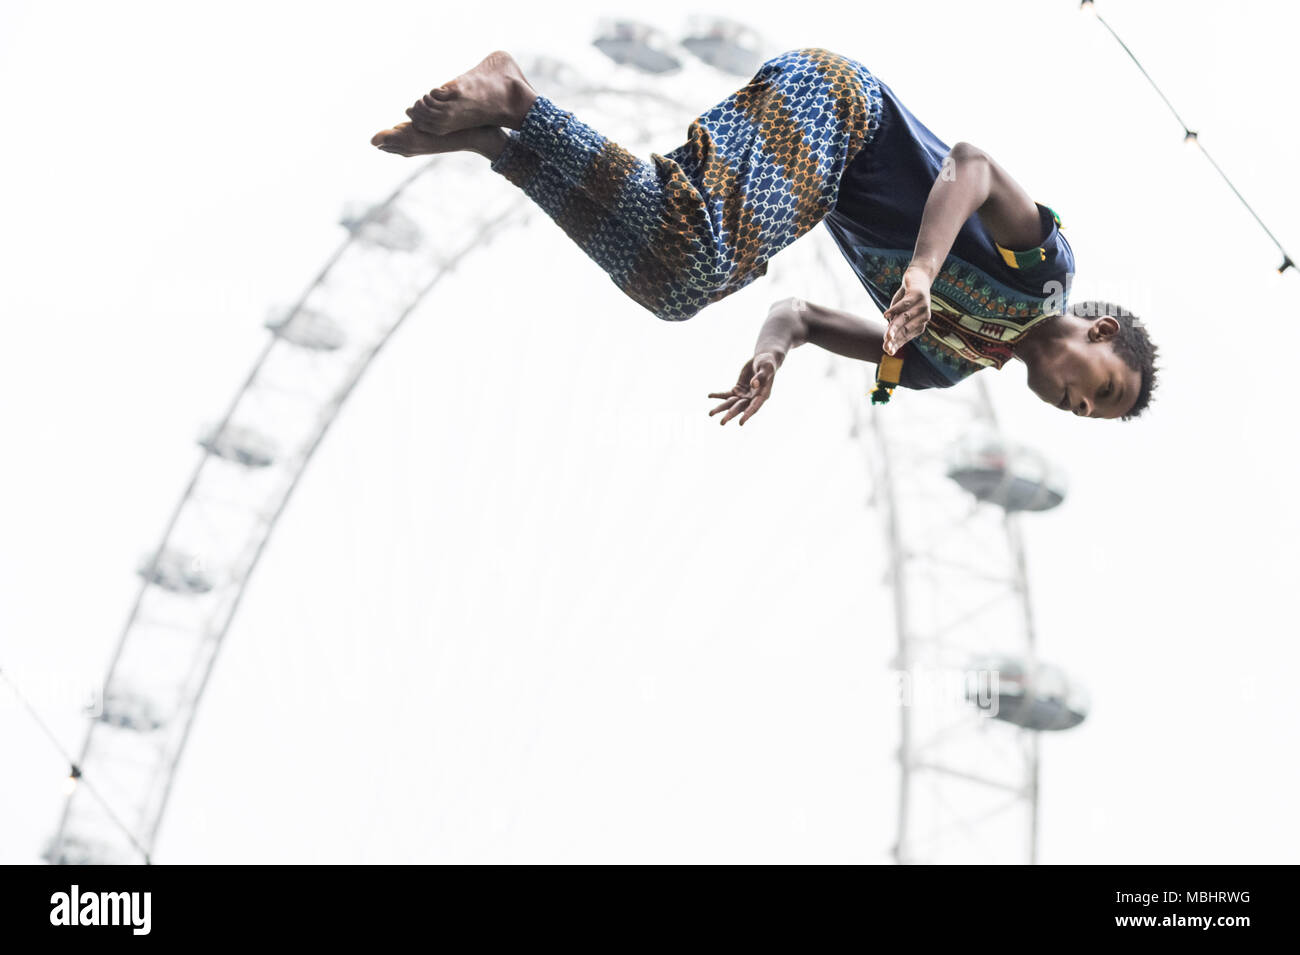 London, UK. 10th April 2018. Launch performance of Circus Abyssinia: Ethiopian Dream. The headline act of the Underbelly Festival Southbank to celebrate 250 years of circus and 10 years of Underbelly on the Southbank. Credit: Guy Corbishley/Alamy Live News - Stock Image